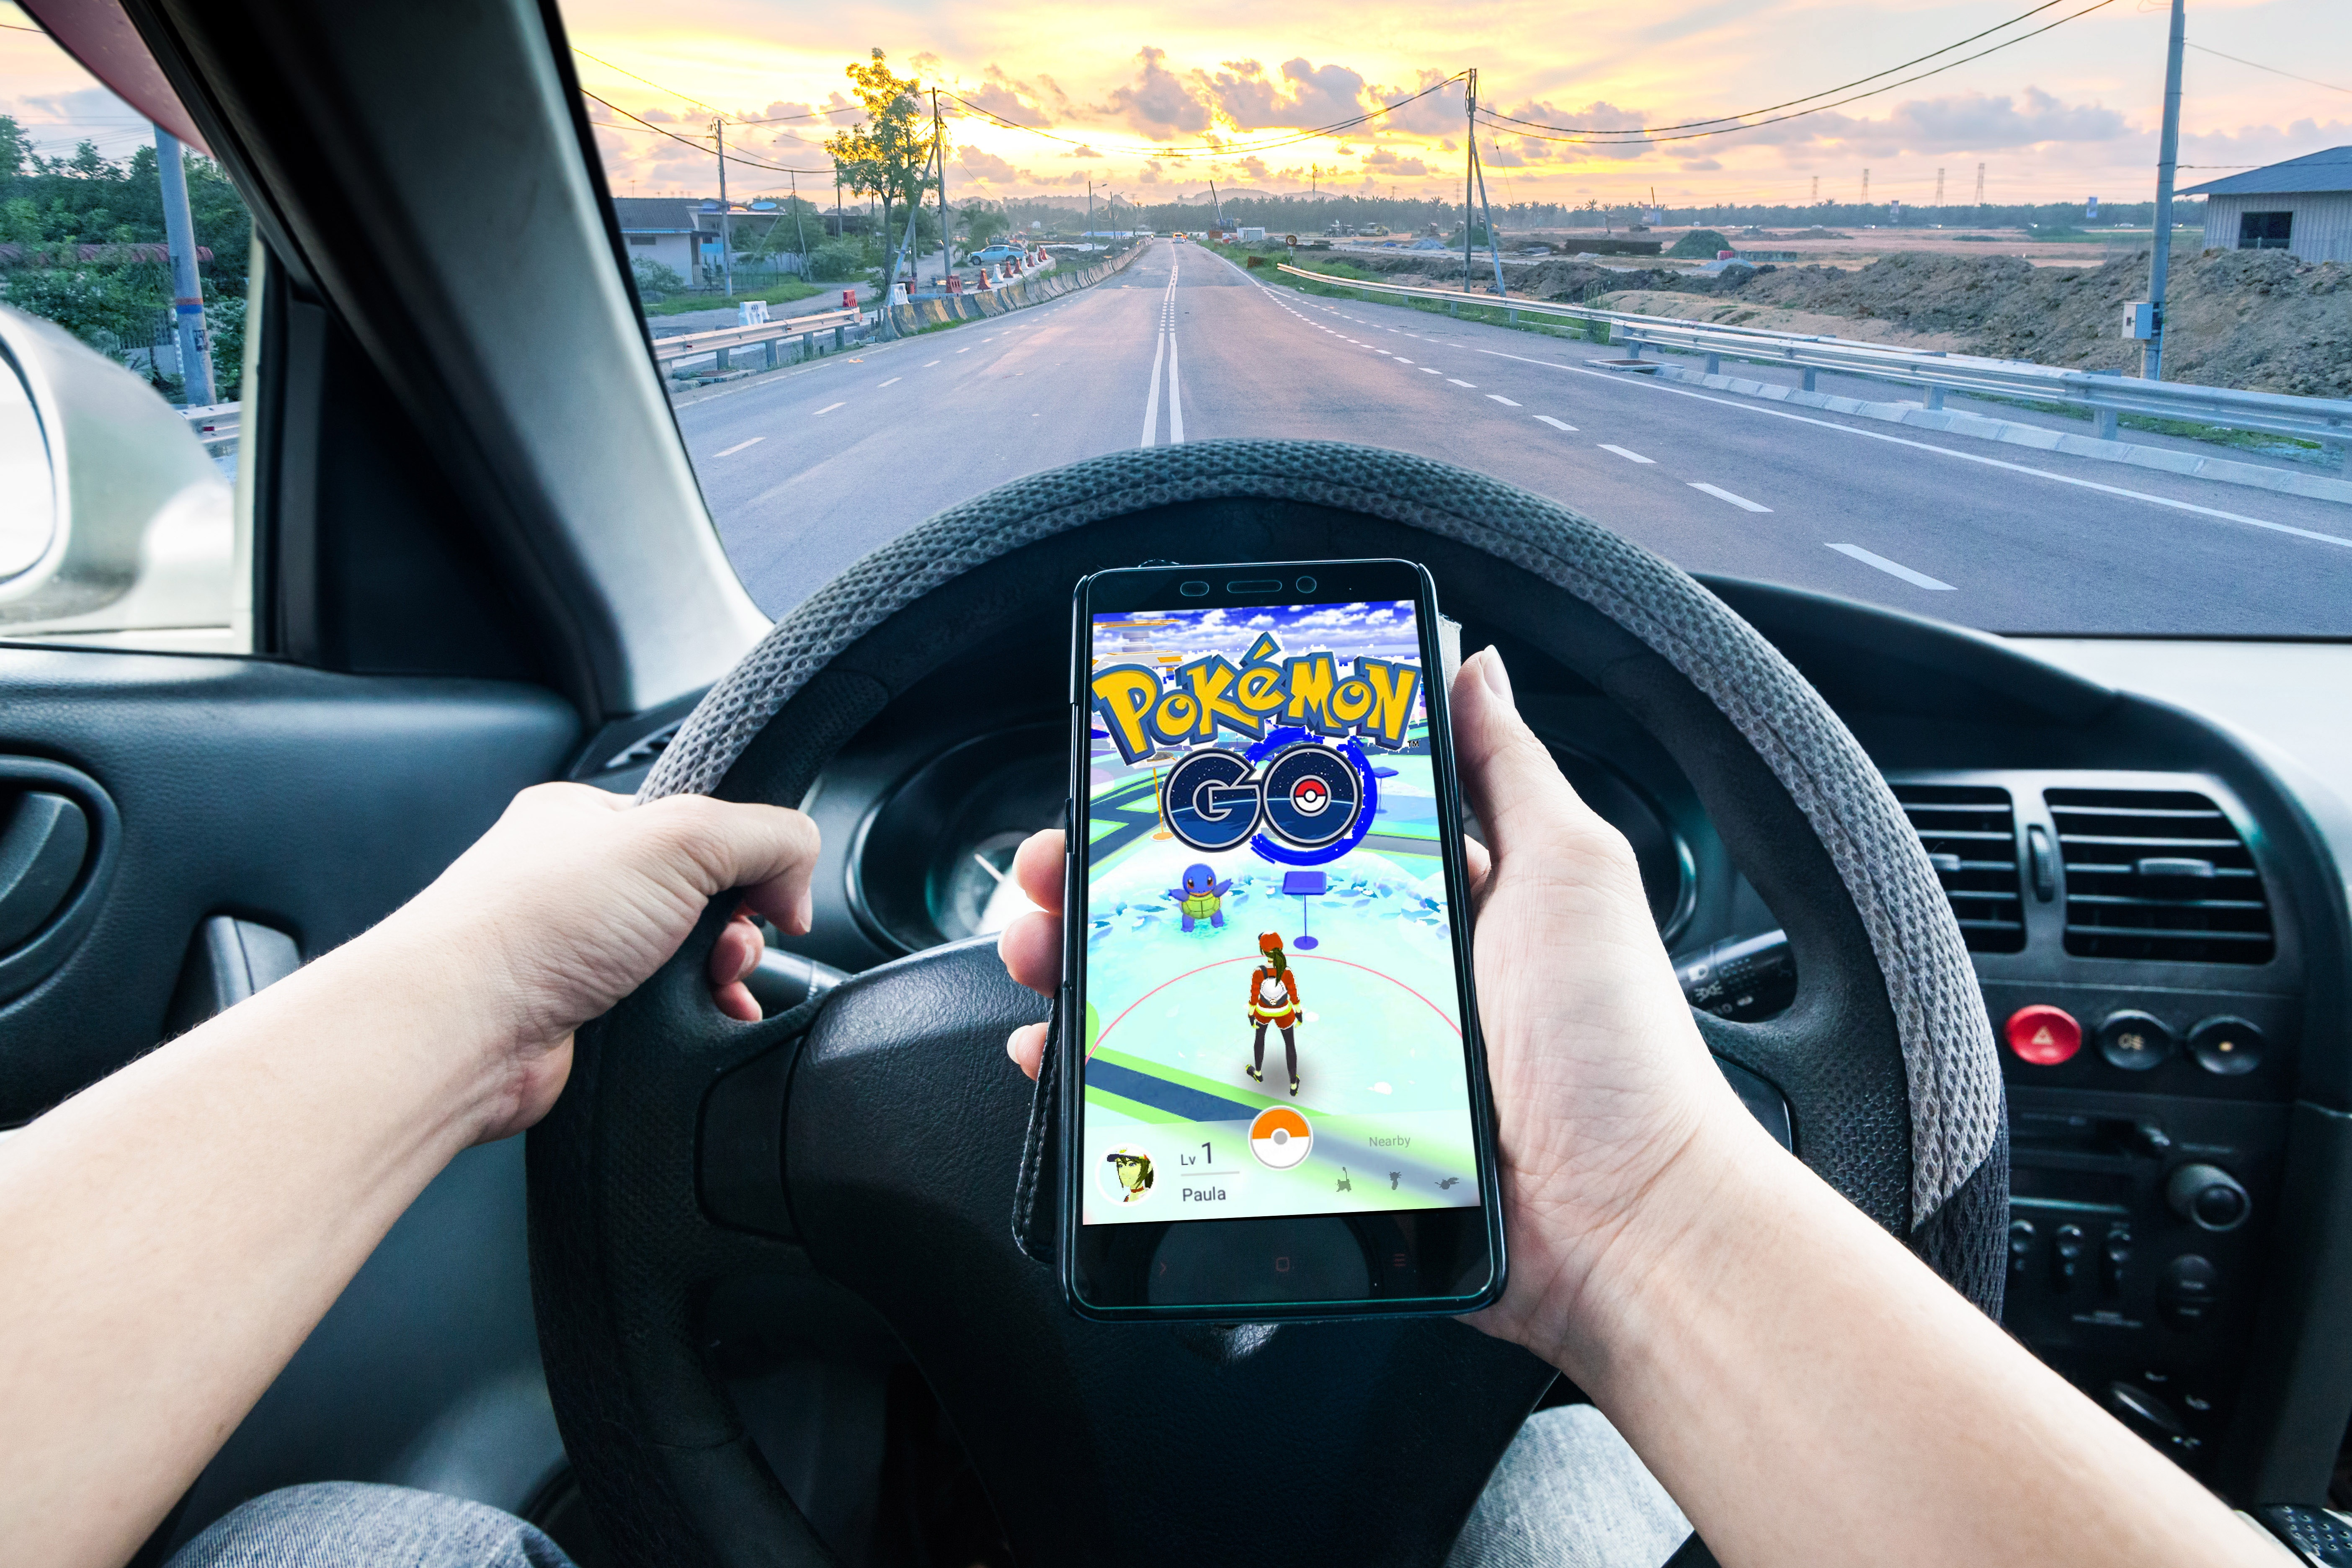 Do not drive and play pokemon go, like this picture shows.